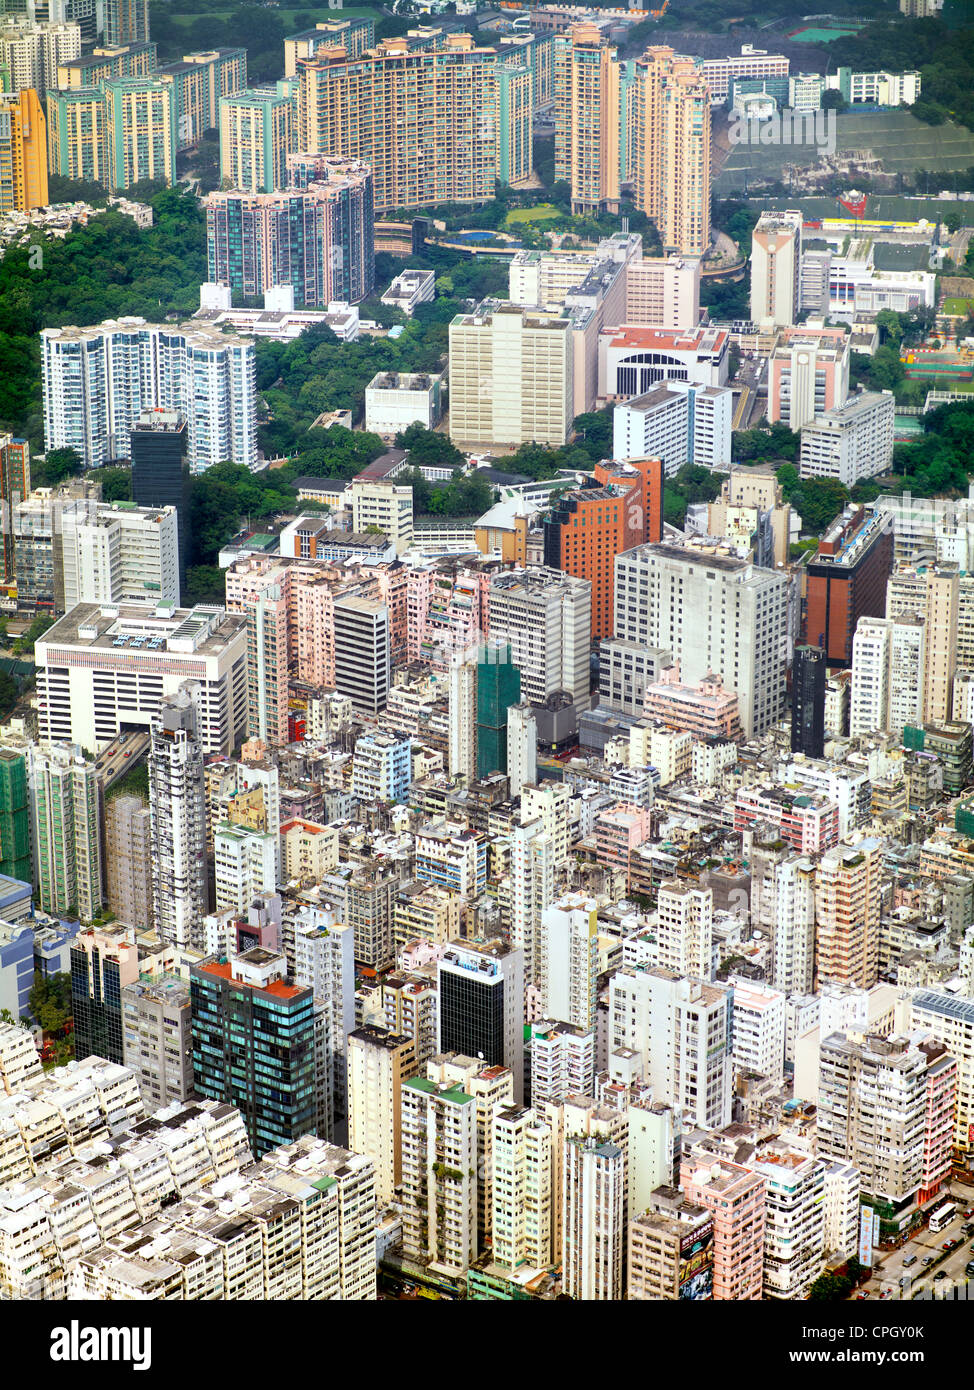 Aerial view showing the density of residential buildings in Kowloon, Hong Hong. September 2011. - Stock Image